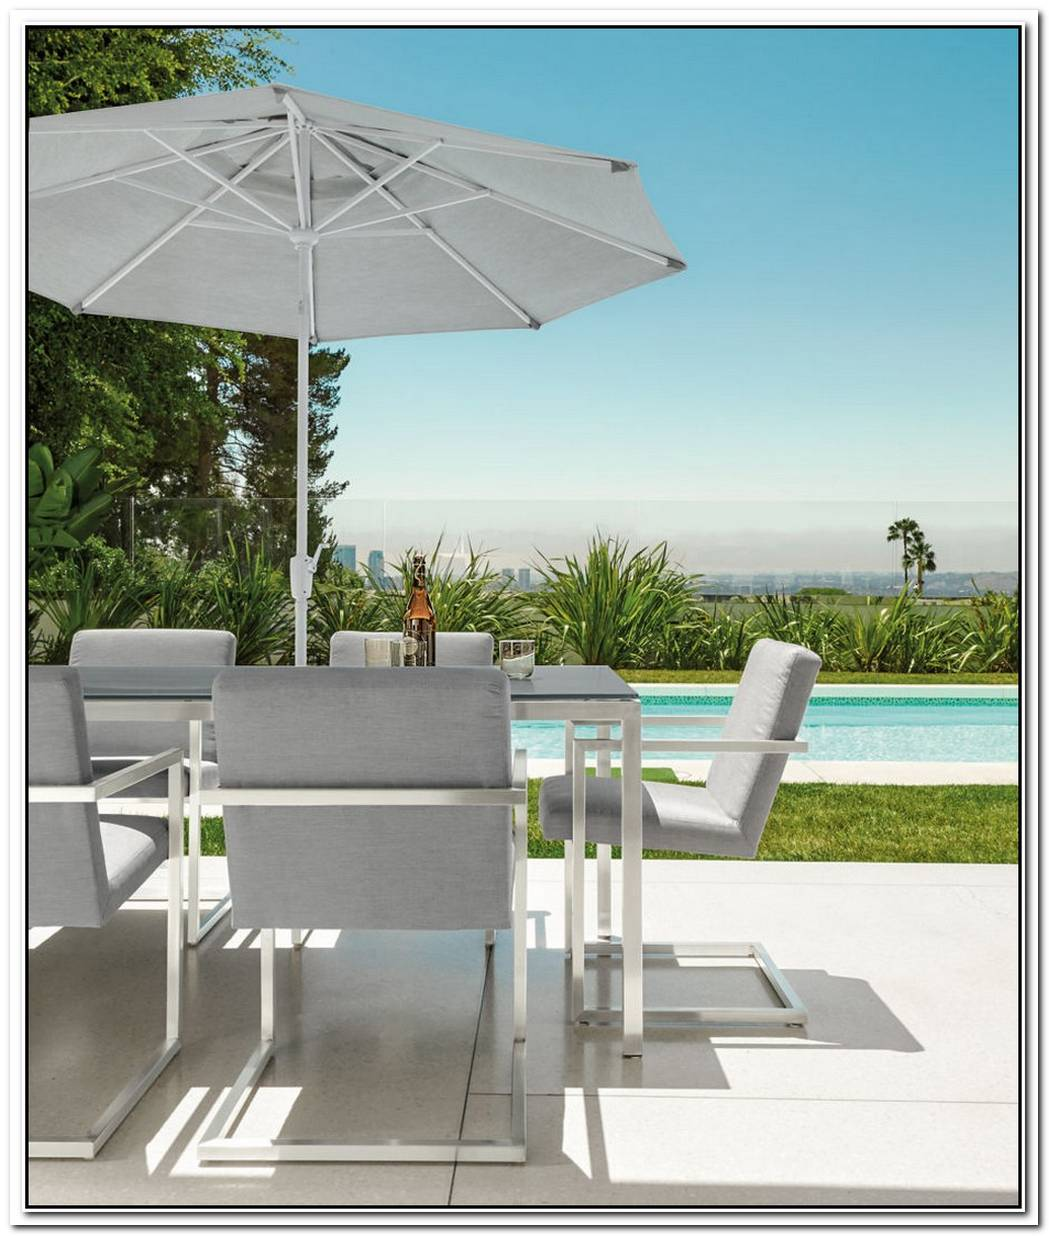 HighEnd Patio Furniture Options For Spring